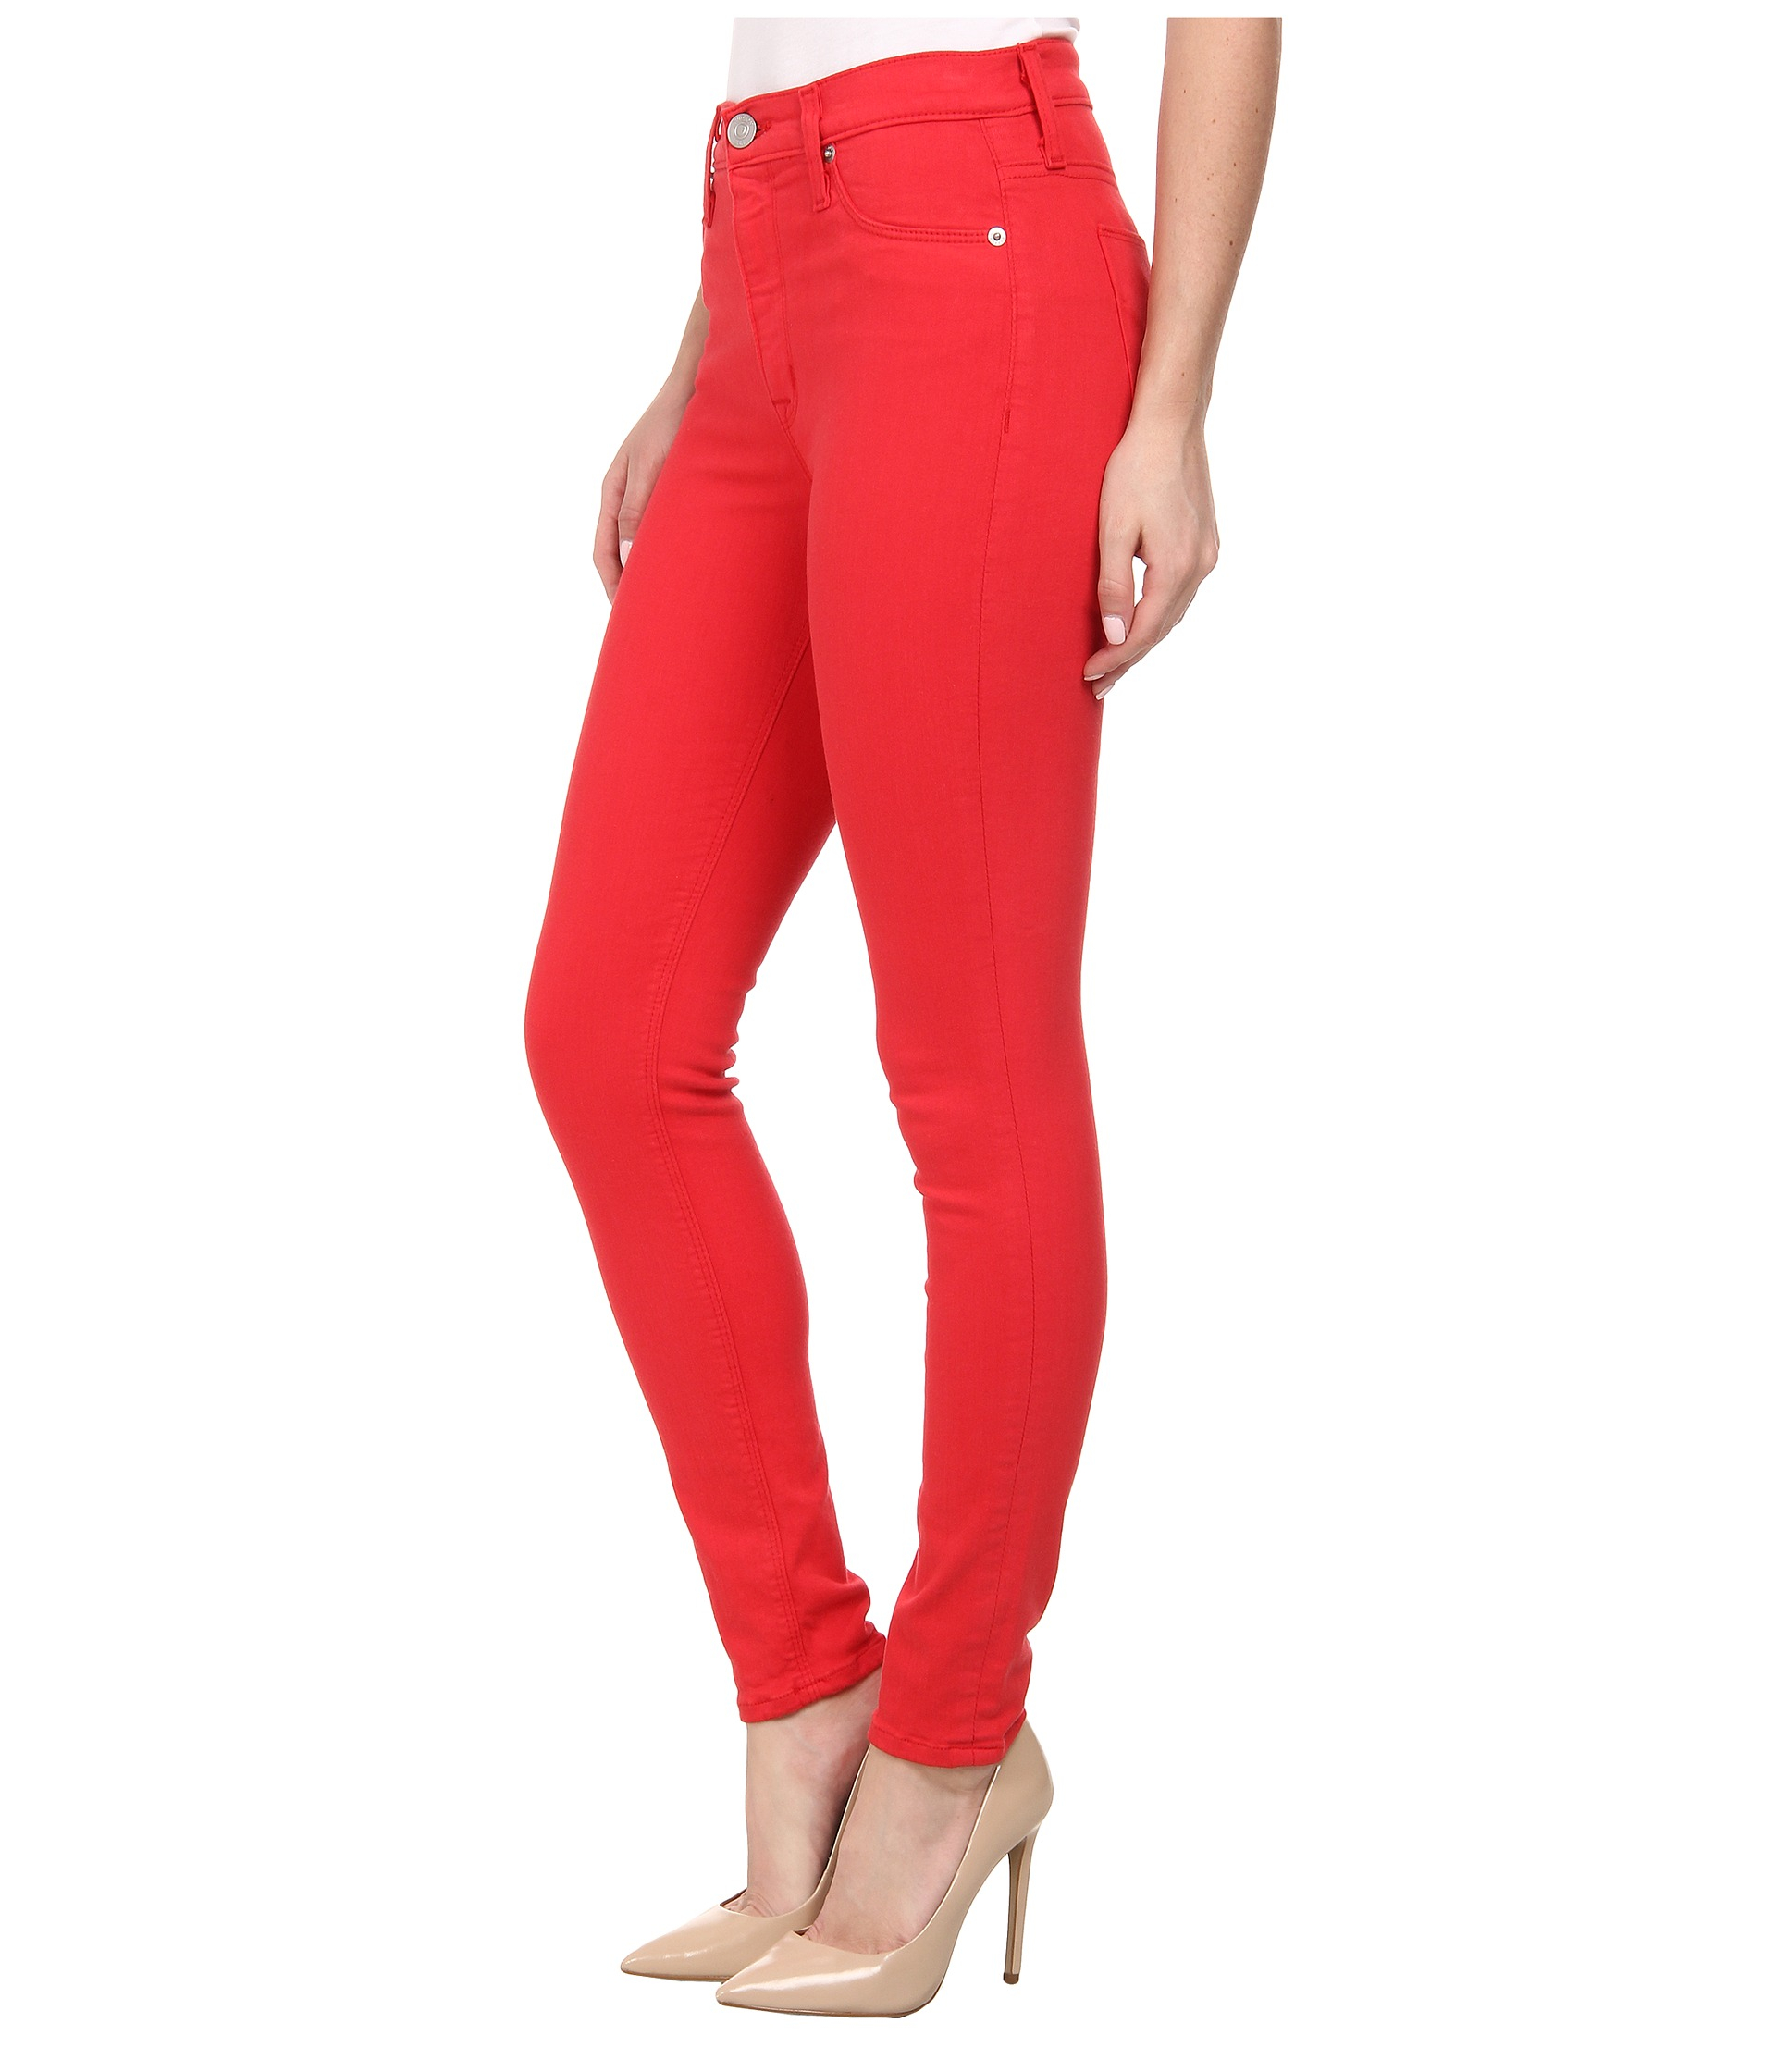 High waisted skinny jeans red – Global fashion jeans models